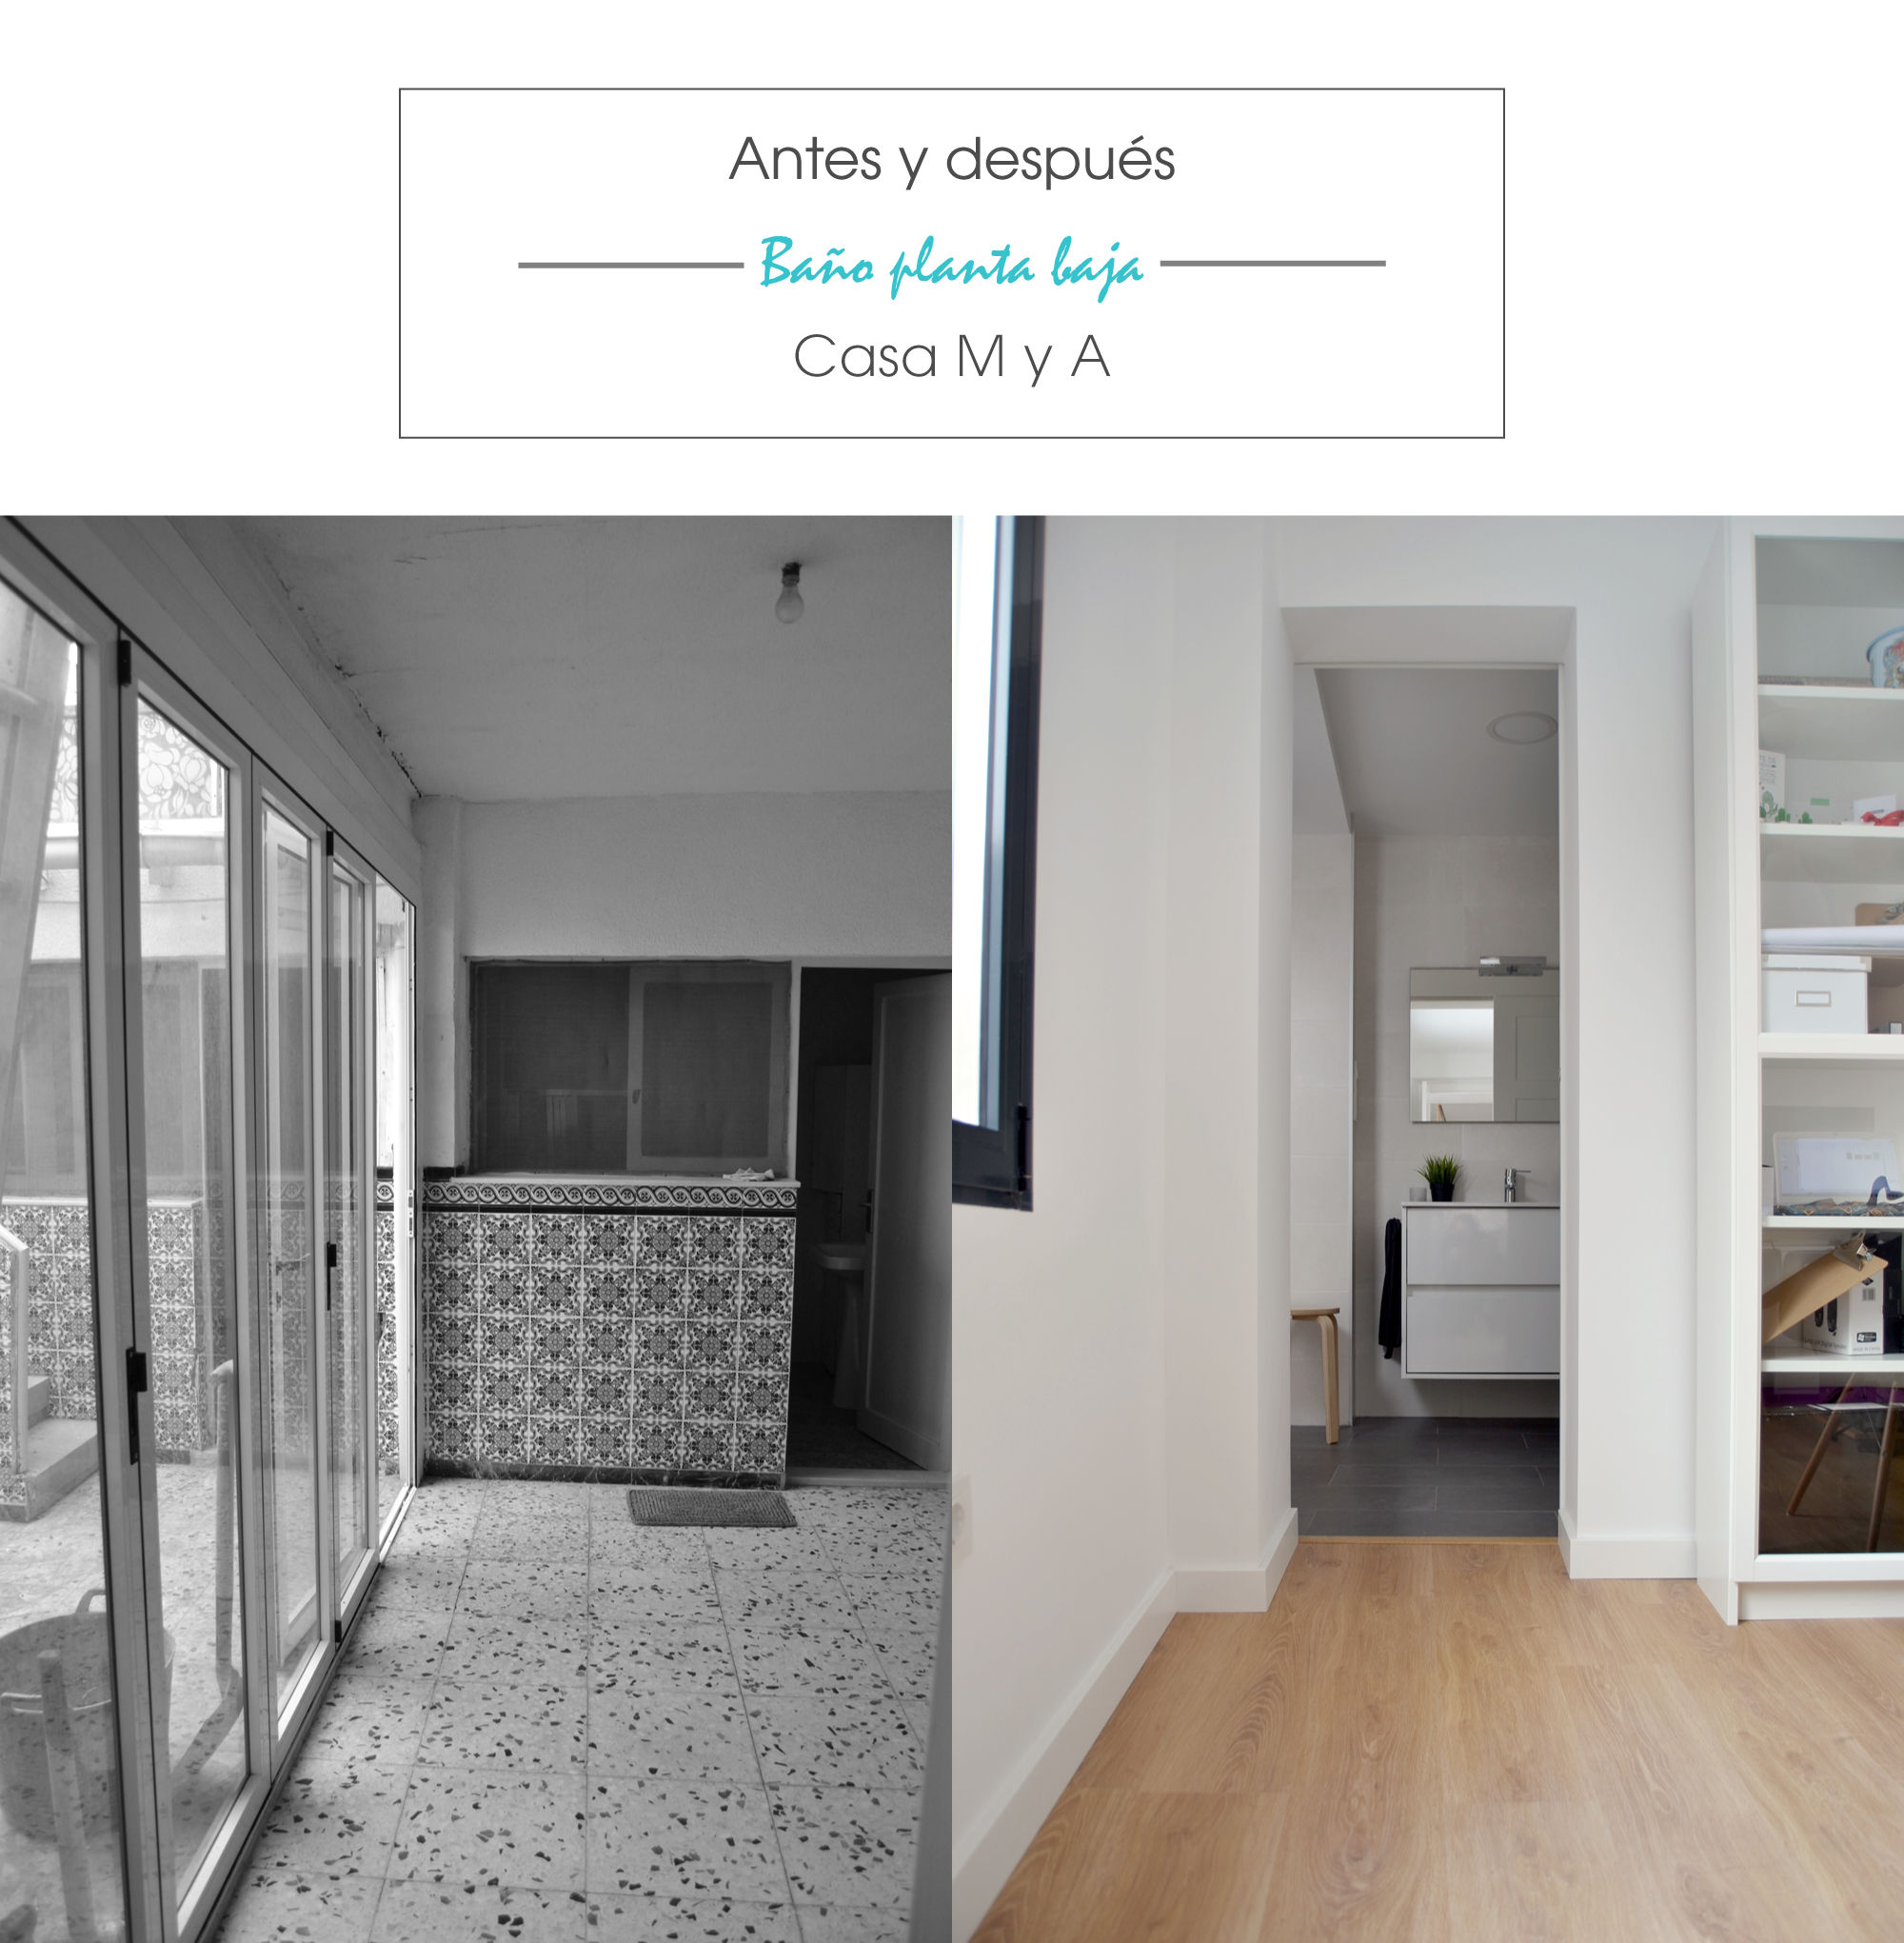 antes_despues_casamya_reforma_integral_blog_ana_pla_interiorismo_decoracion_1